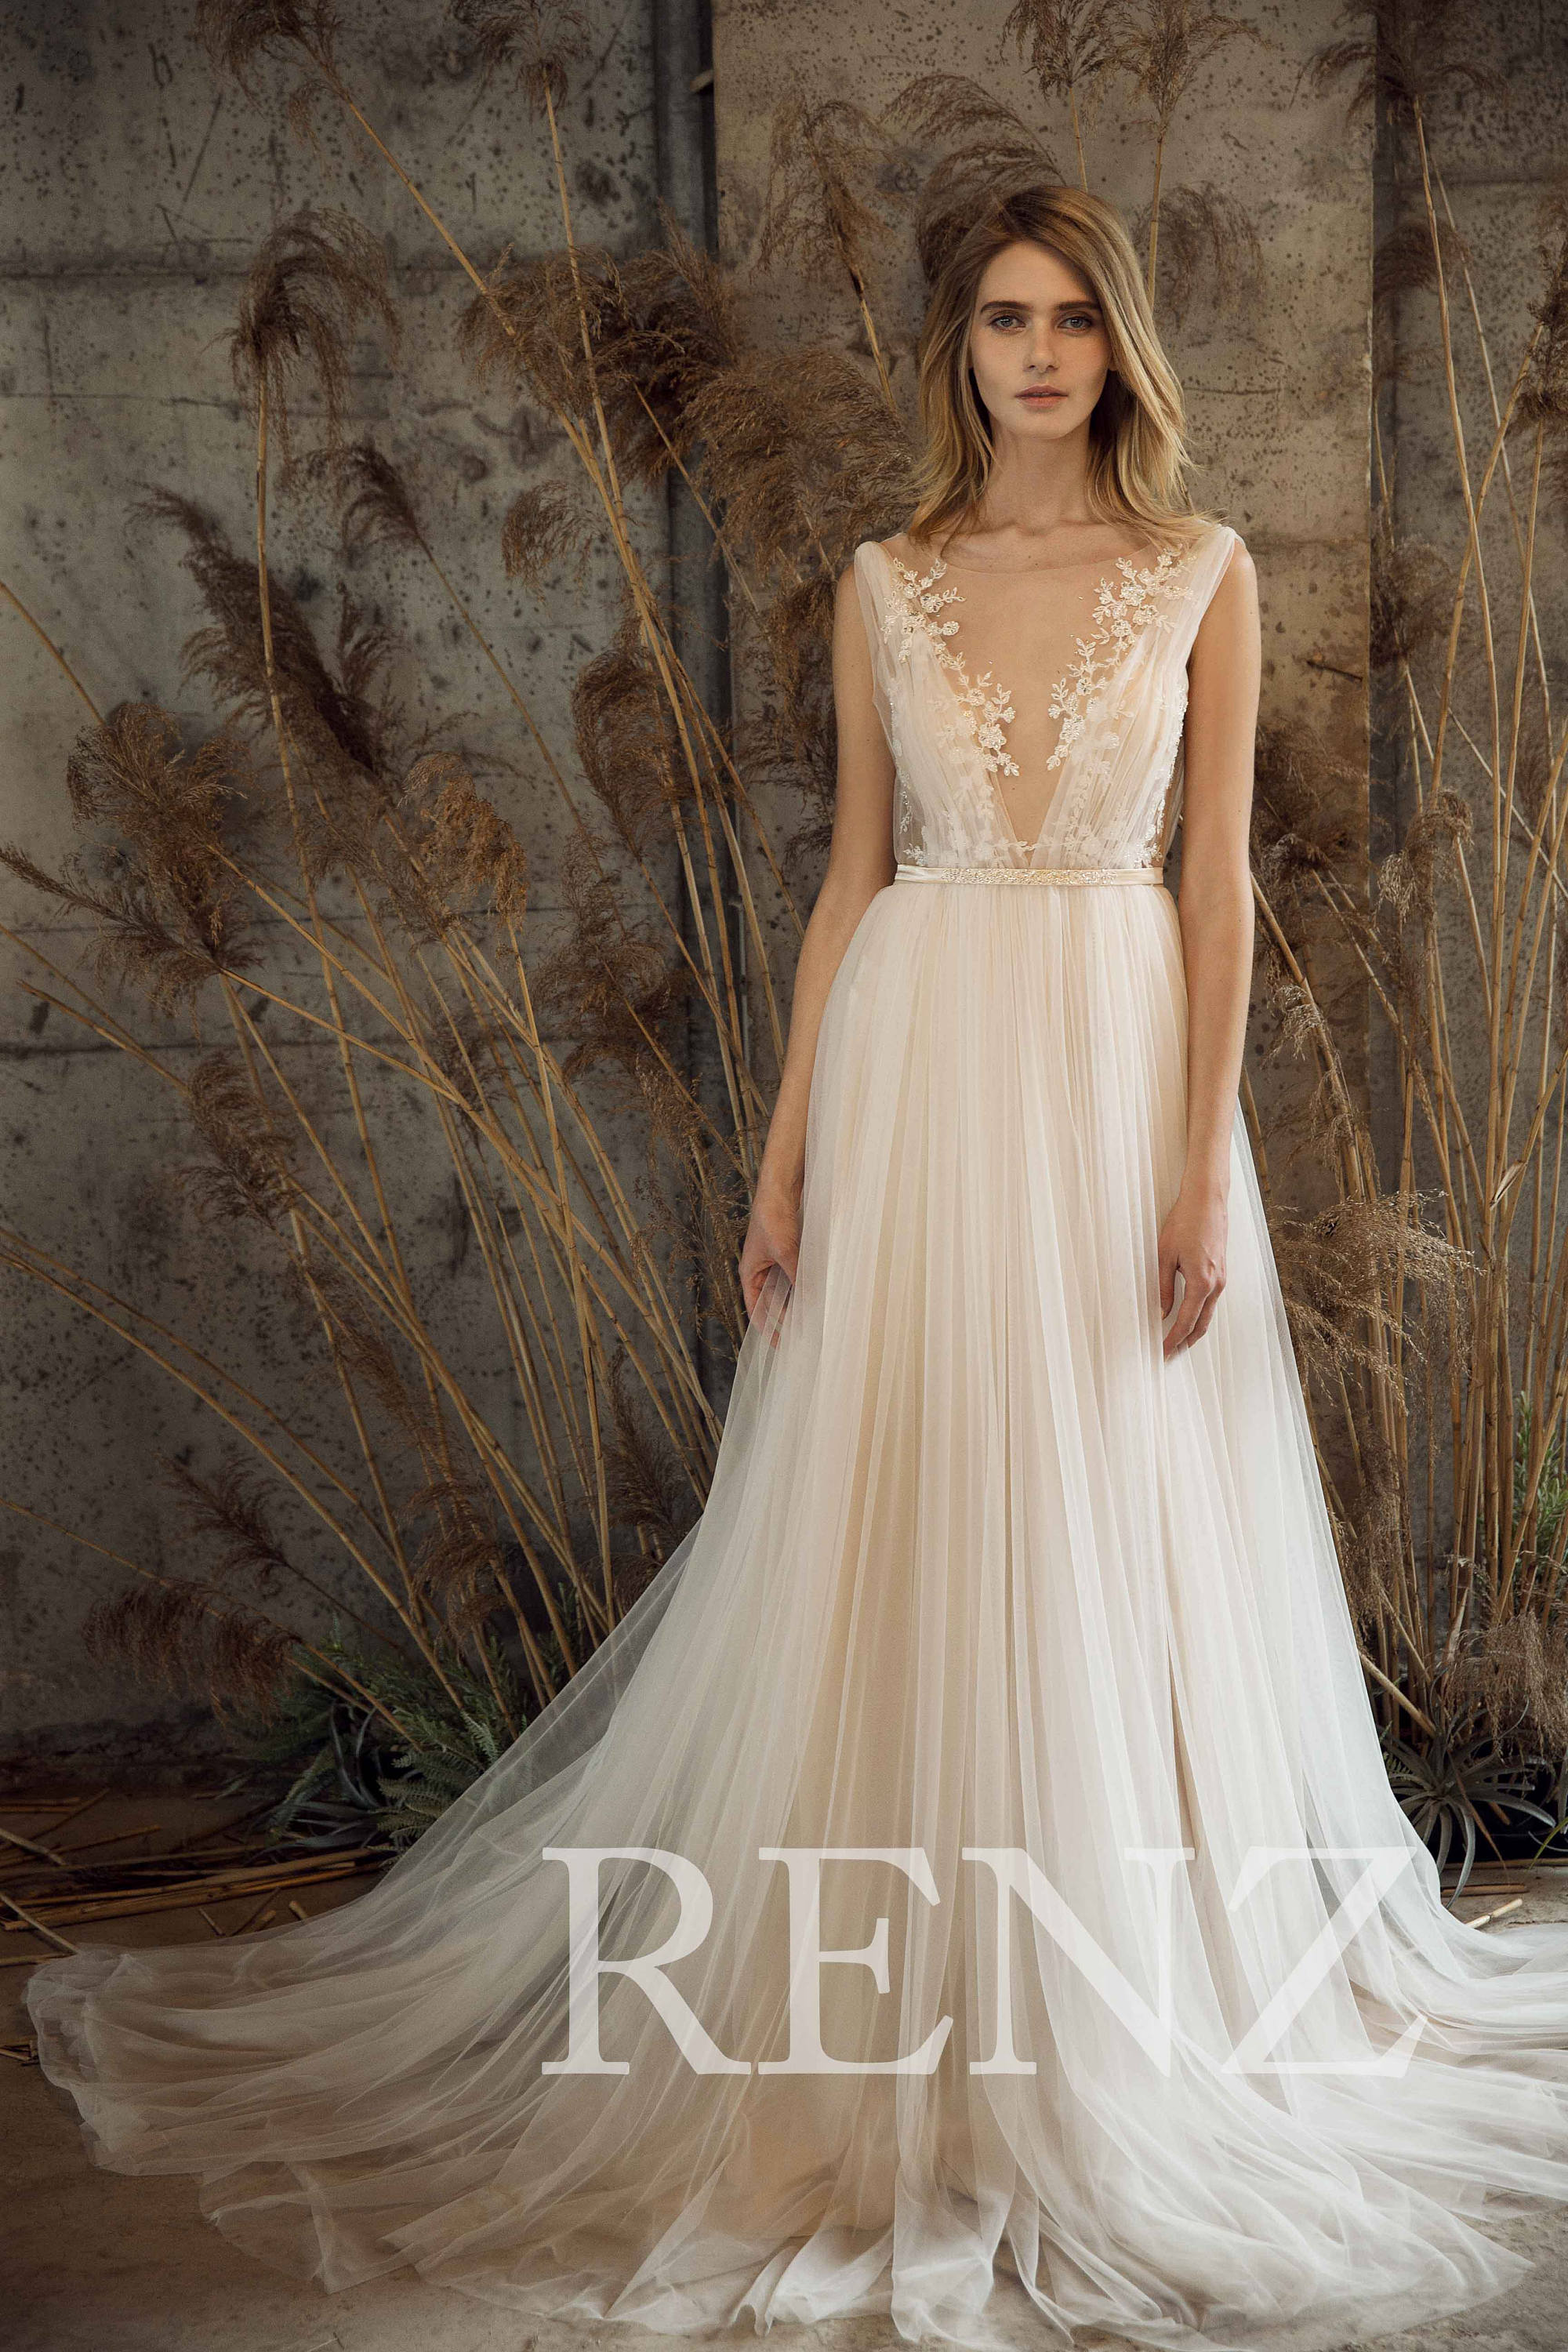 Wedding Dresses Under 500 The Ultimate List For Budget Brides